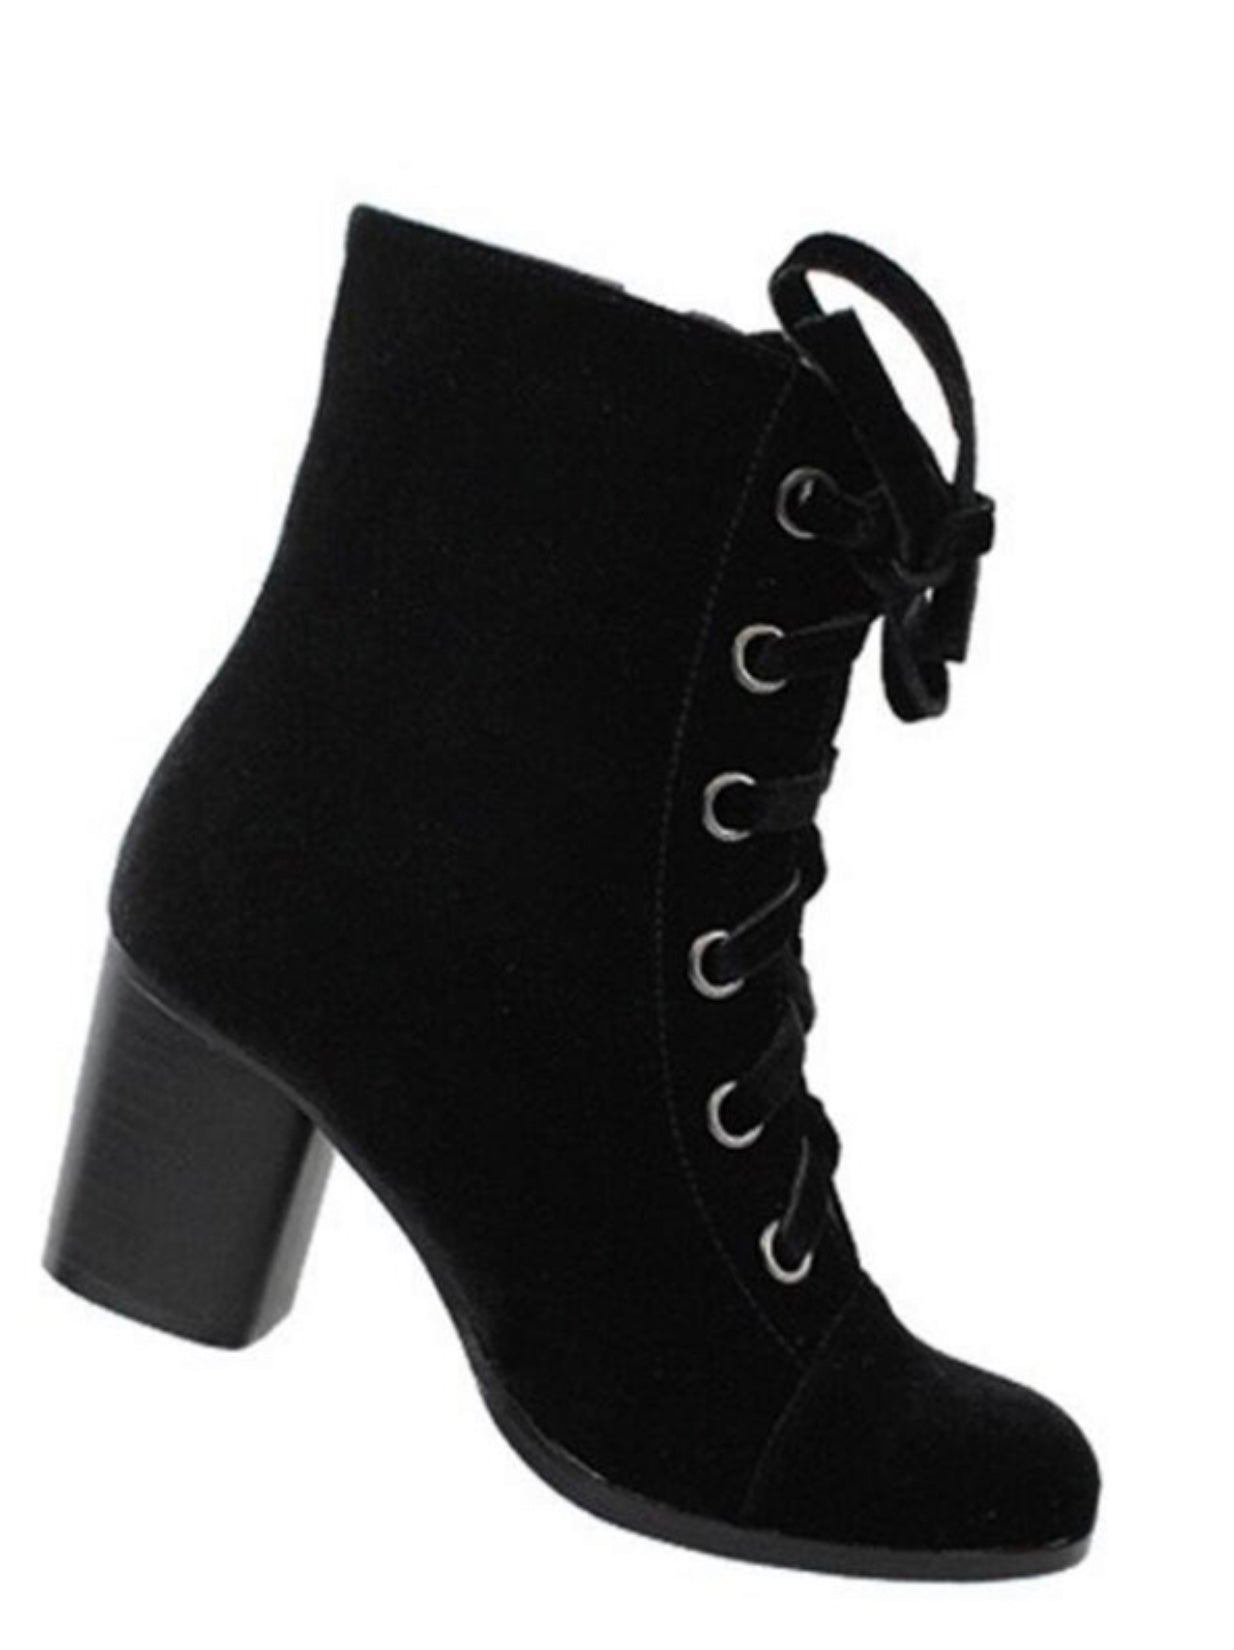 Get Up & Go Black Booties